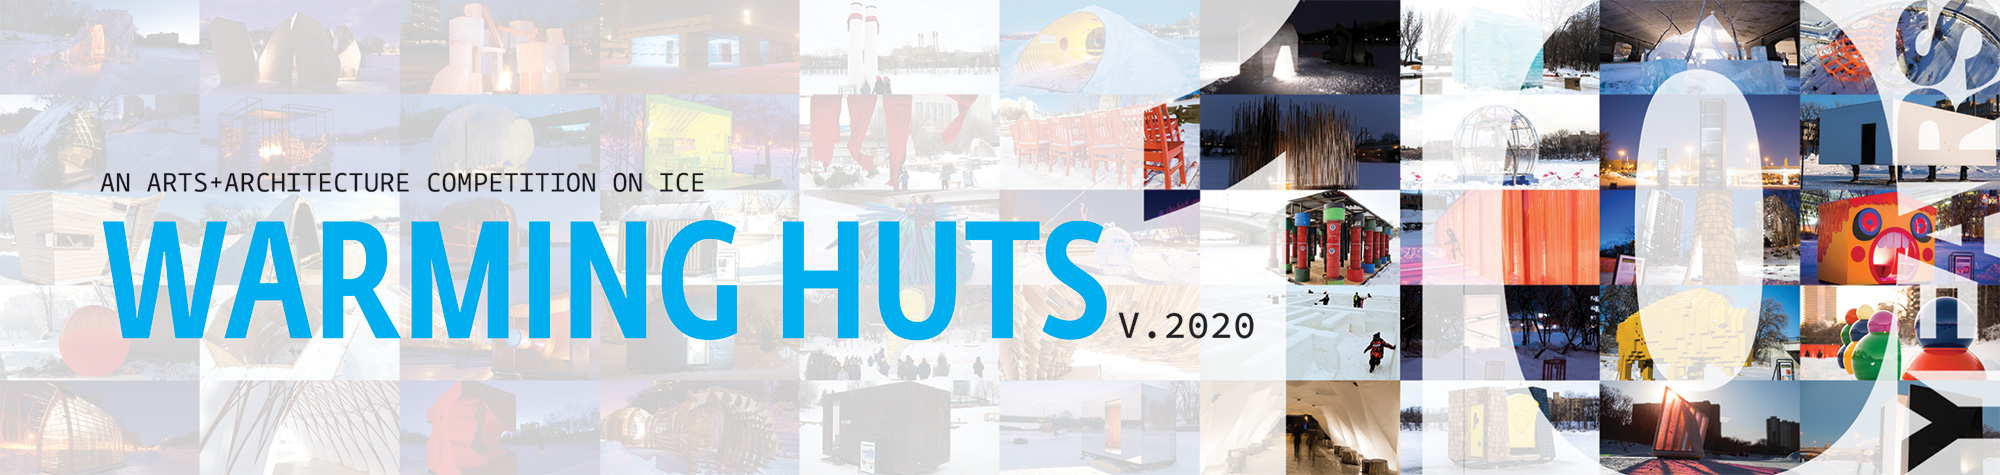 an arts + architecture competition on ice - WARMING HUTS v.2020 | Presented by Artis Reit